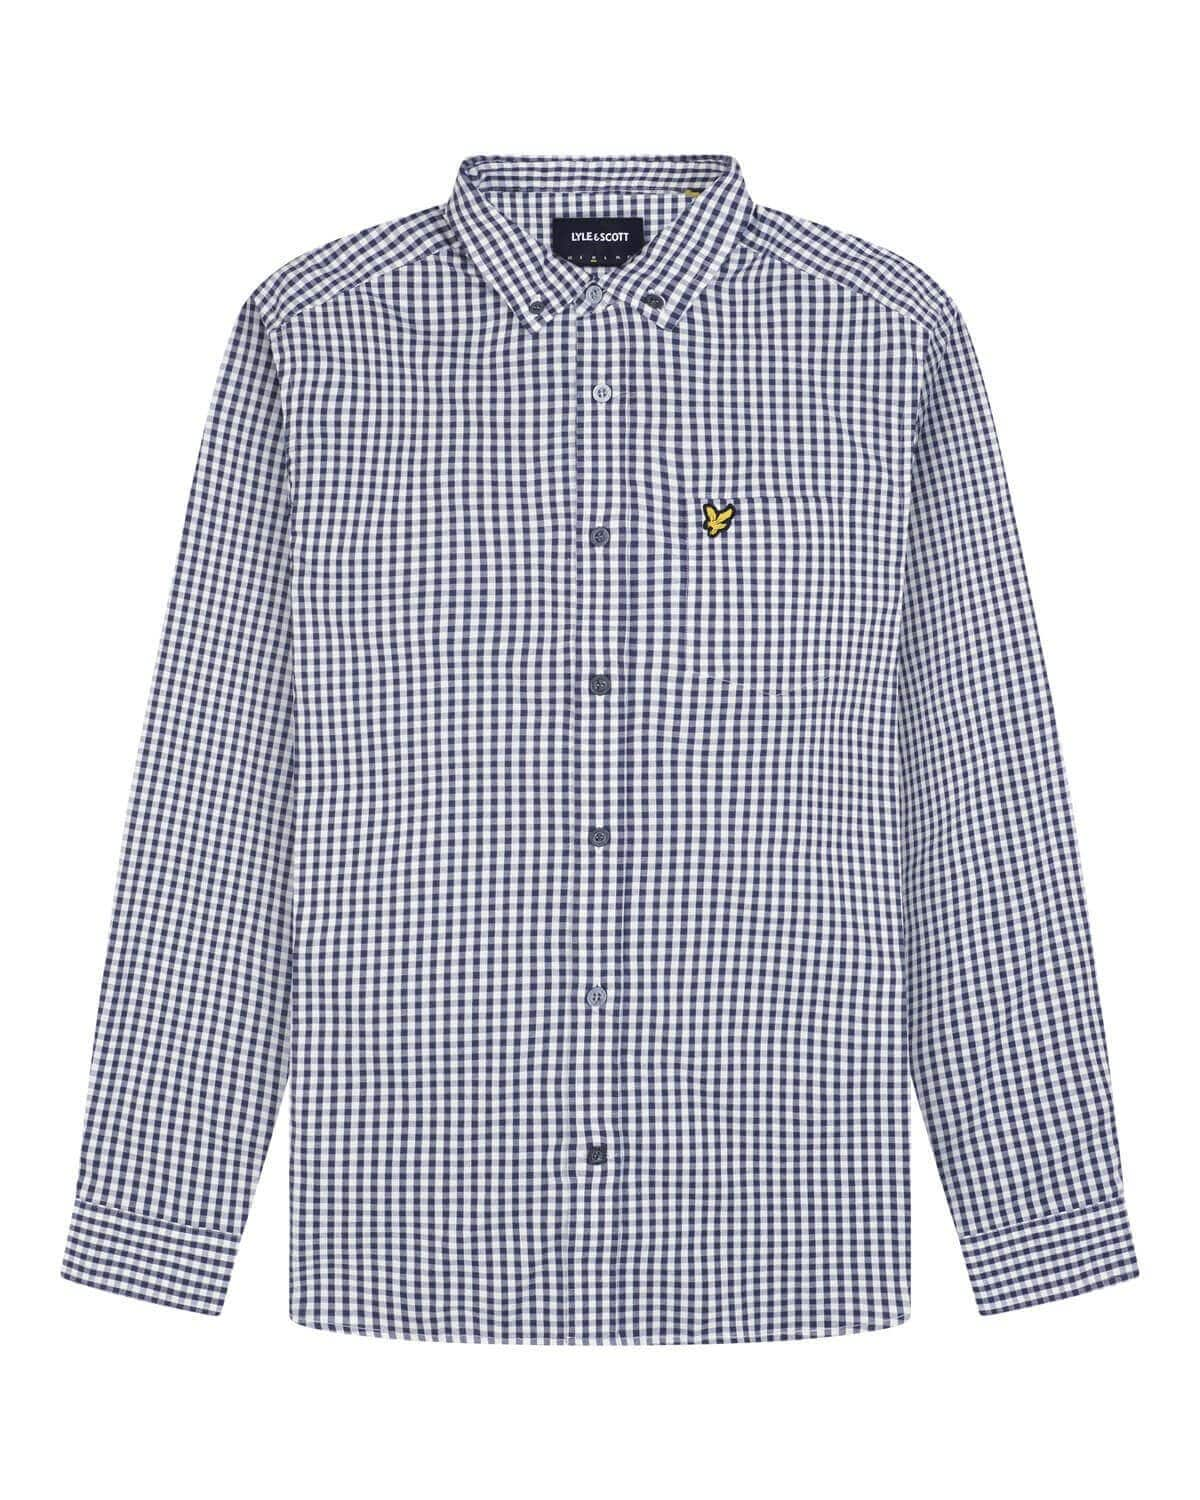 Lyle and Scott Slim Fit Gingham Shirt Navy/White